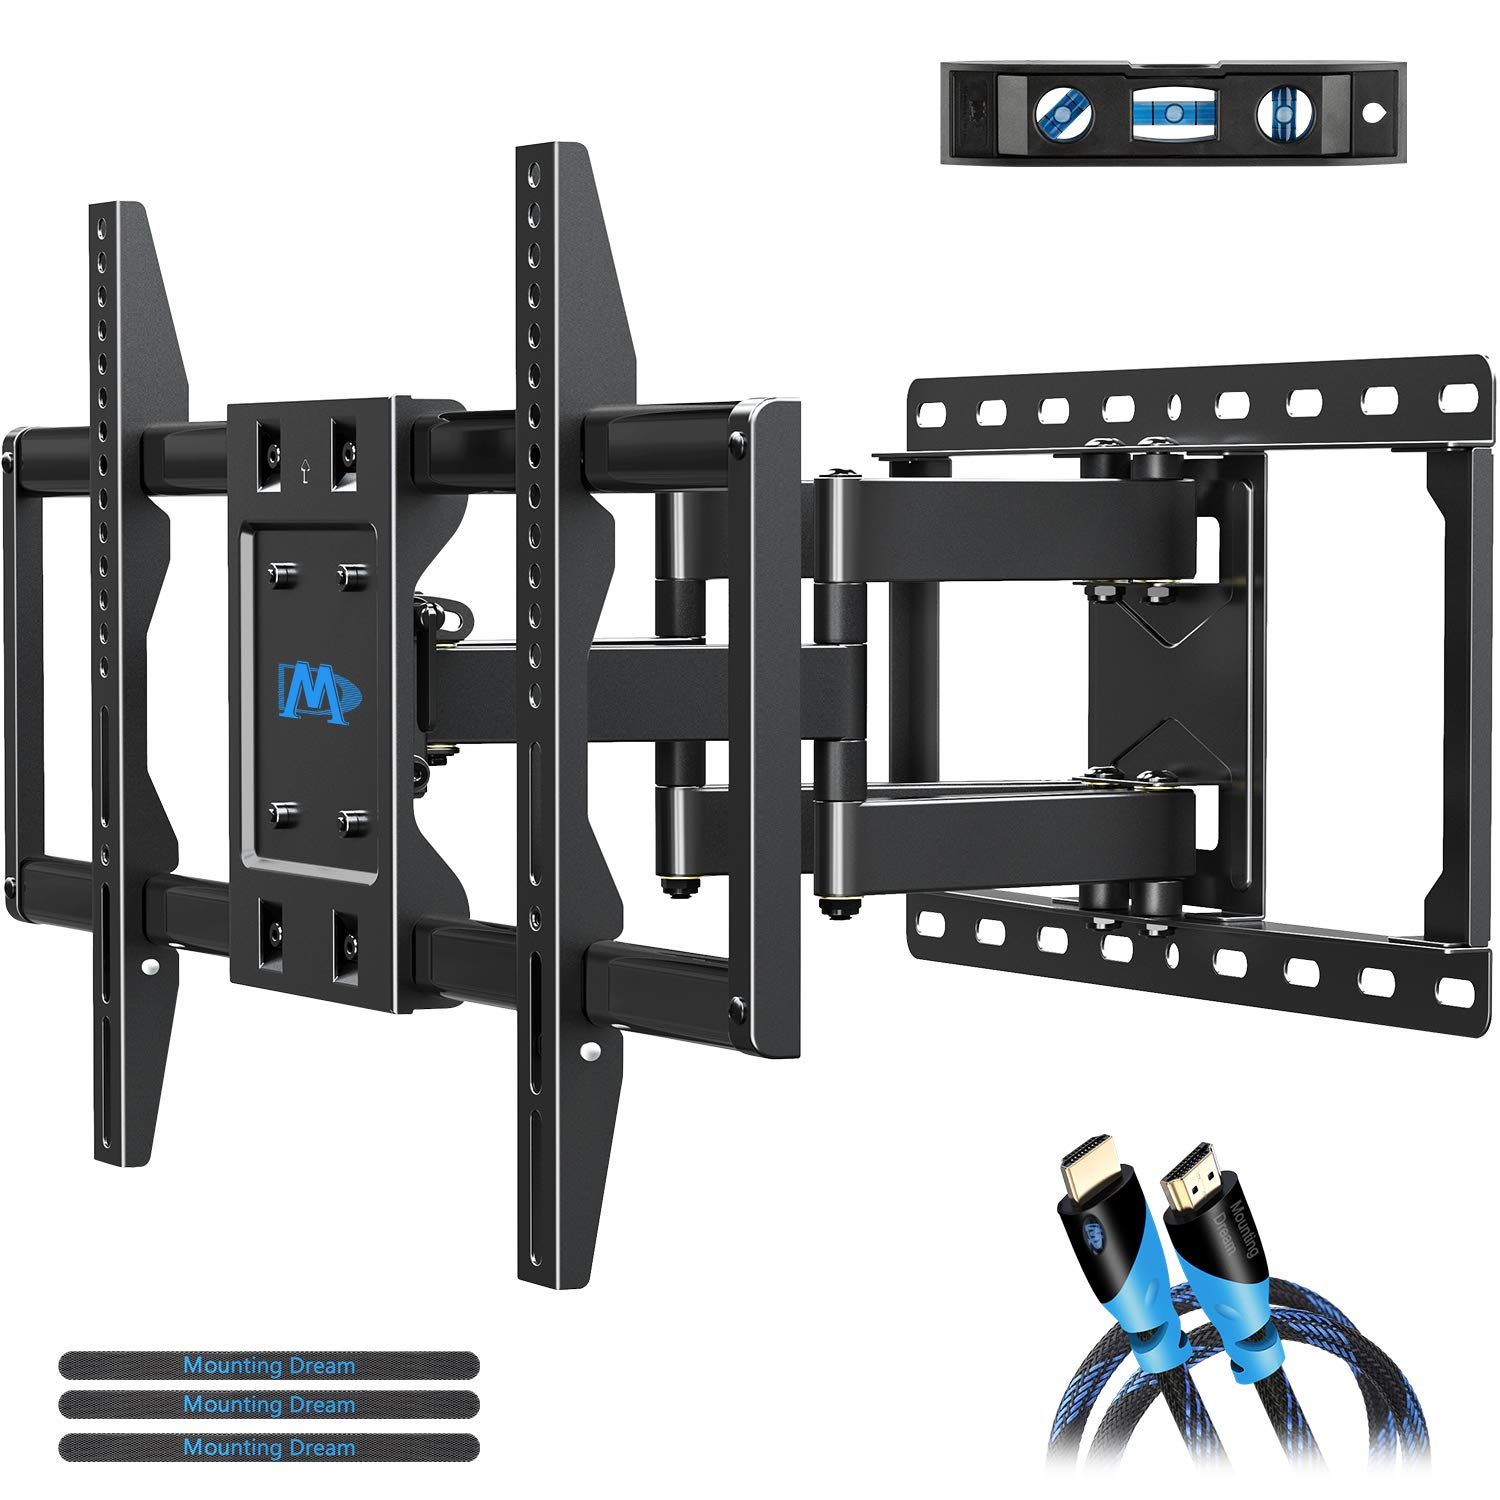 Mounting Dream TV Mount Bracket for 42-70 Inch Flat Screen TVs, Full Motion TV Wall Mounts with Swivel Articulating Dual Arms , Heavy Duty Design - Max VESA 600x400mm , 100 LBS Loading , MD2296 by Mounting Dream